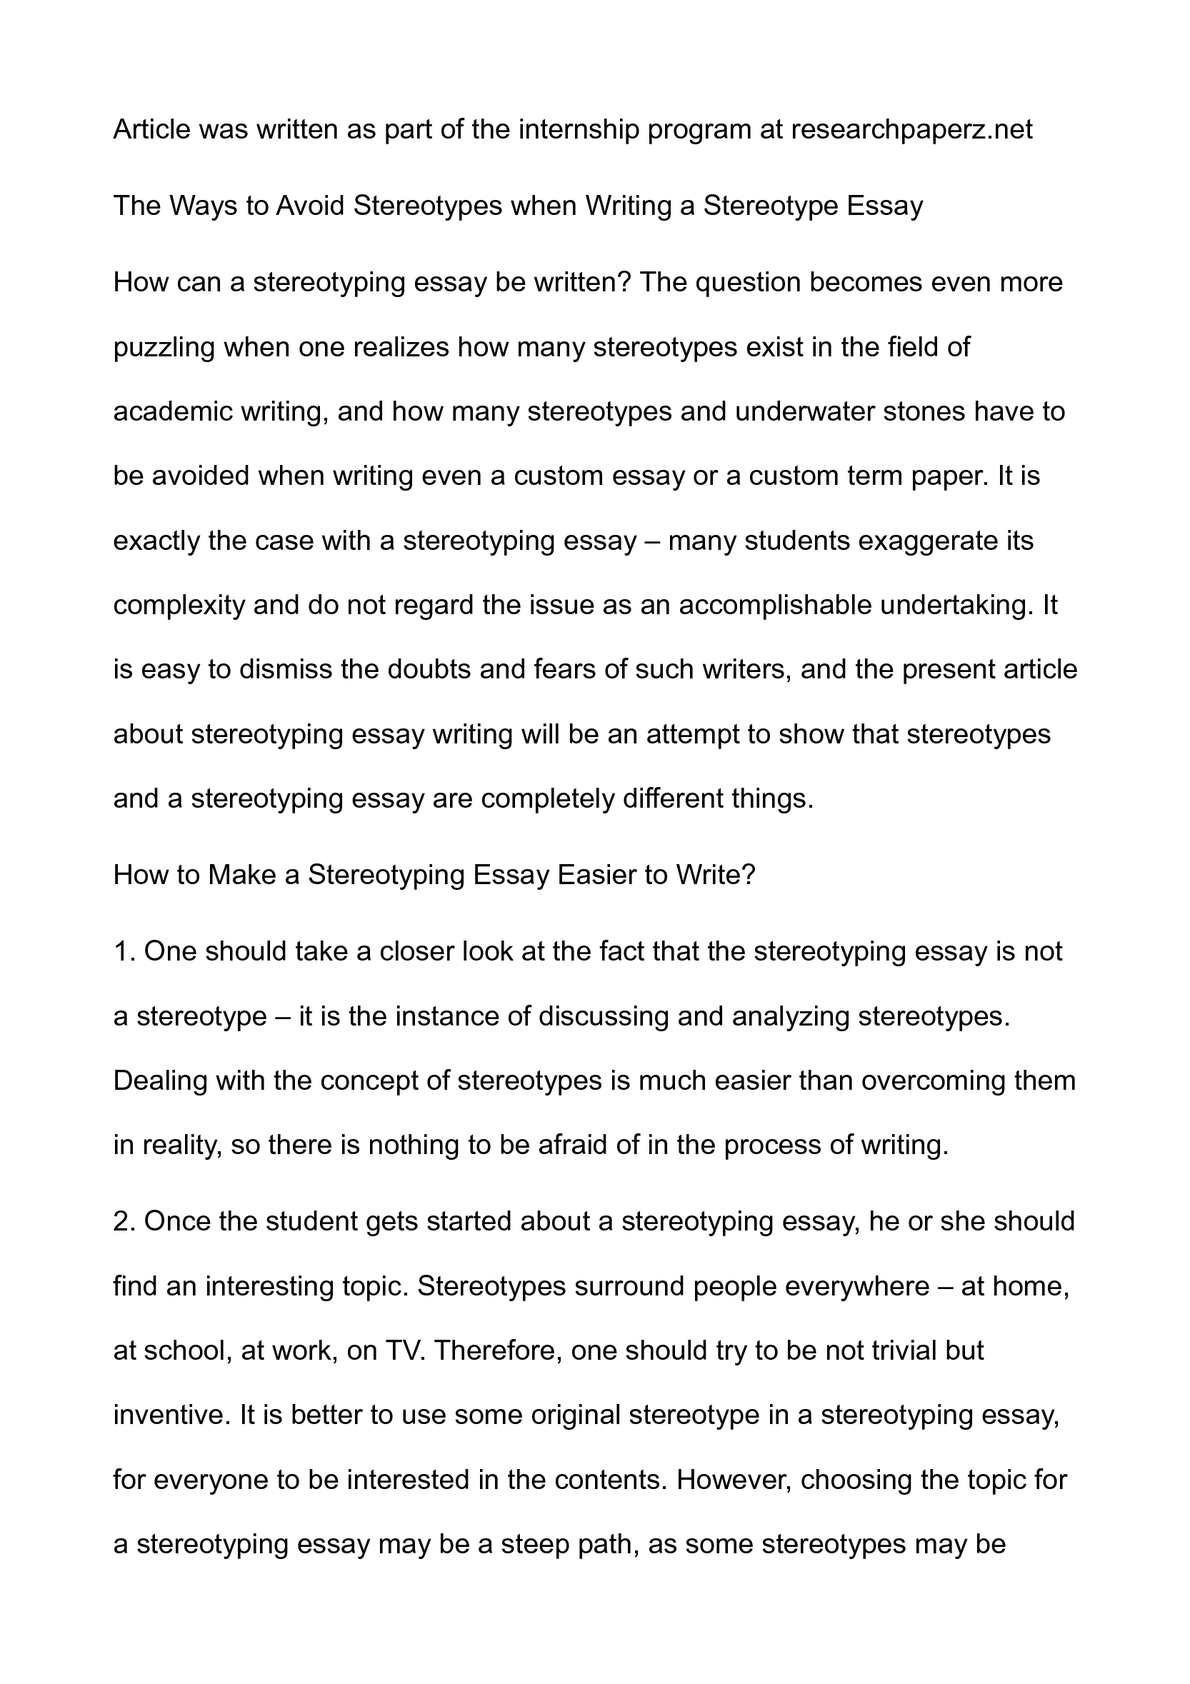 Essays On Different Topics In English  English Argument Essay Topics also Synthesis Essay Topic Ideas Calamo  The Ways To Avoid Stereotypes When Writing A Stereotype Essay Assignment Help Toronto